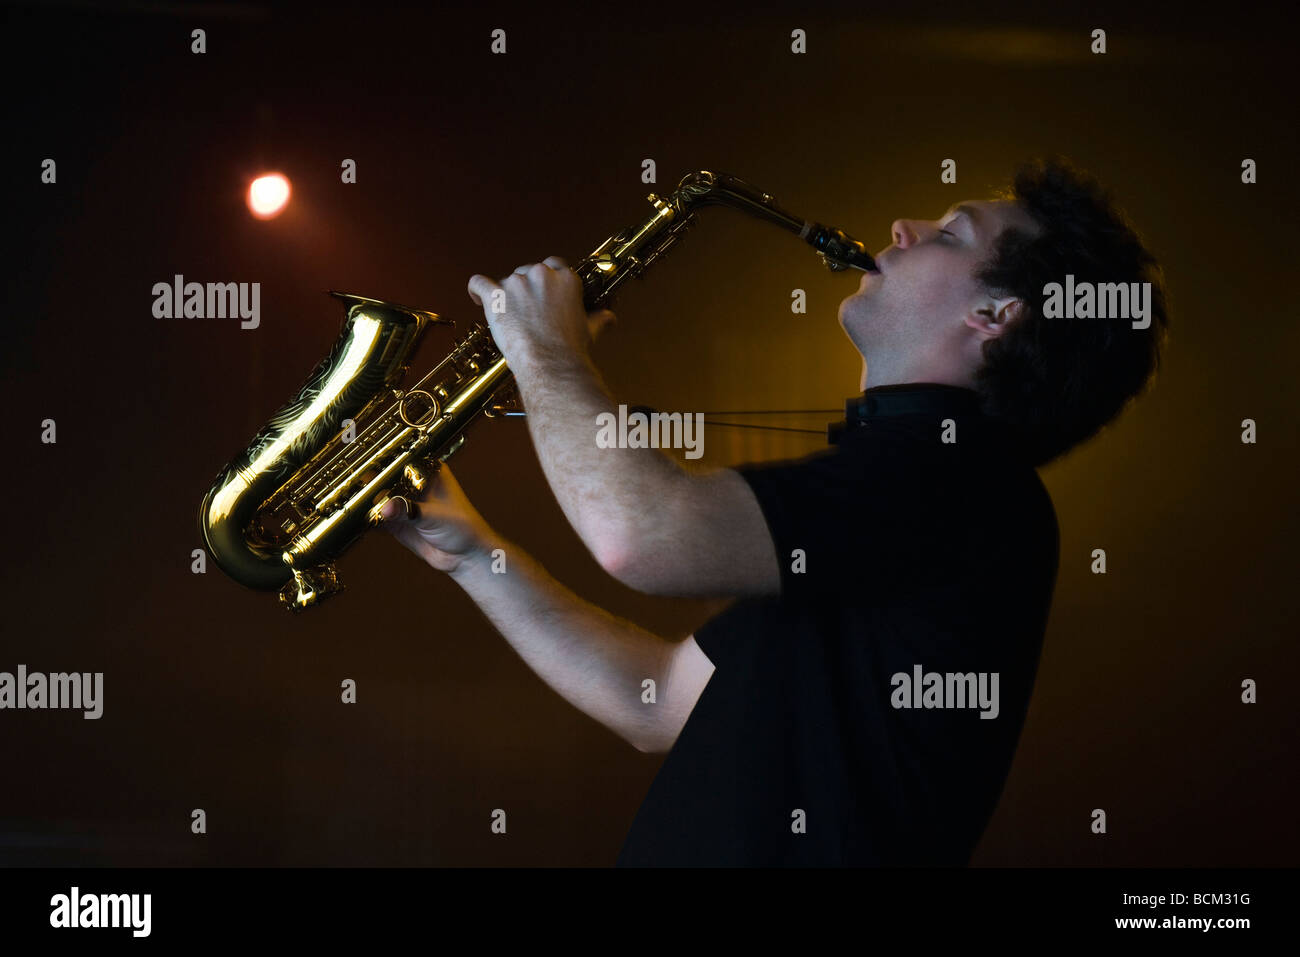 Young man playing saxophone in night club, side view - Stock Image